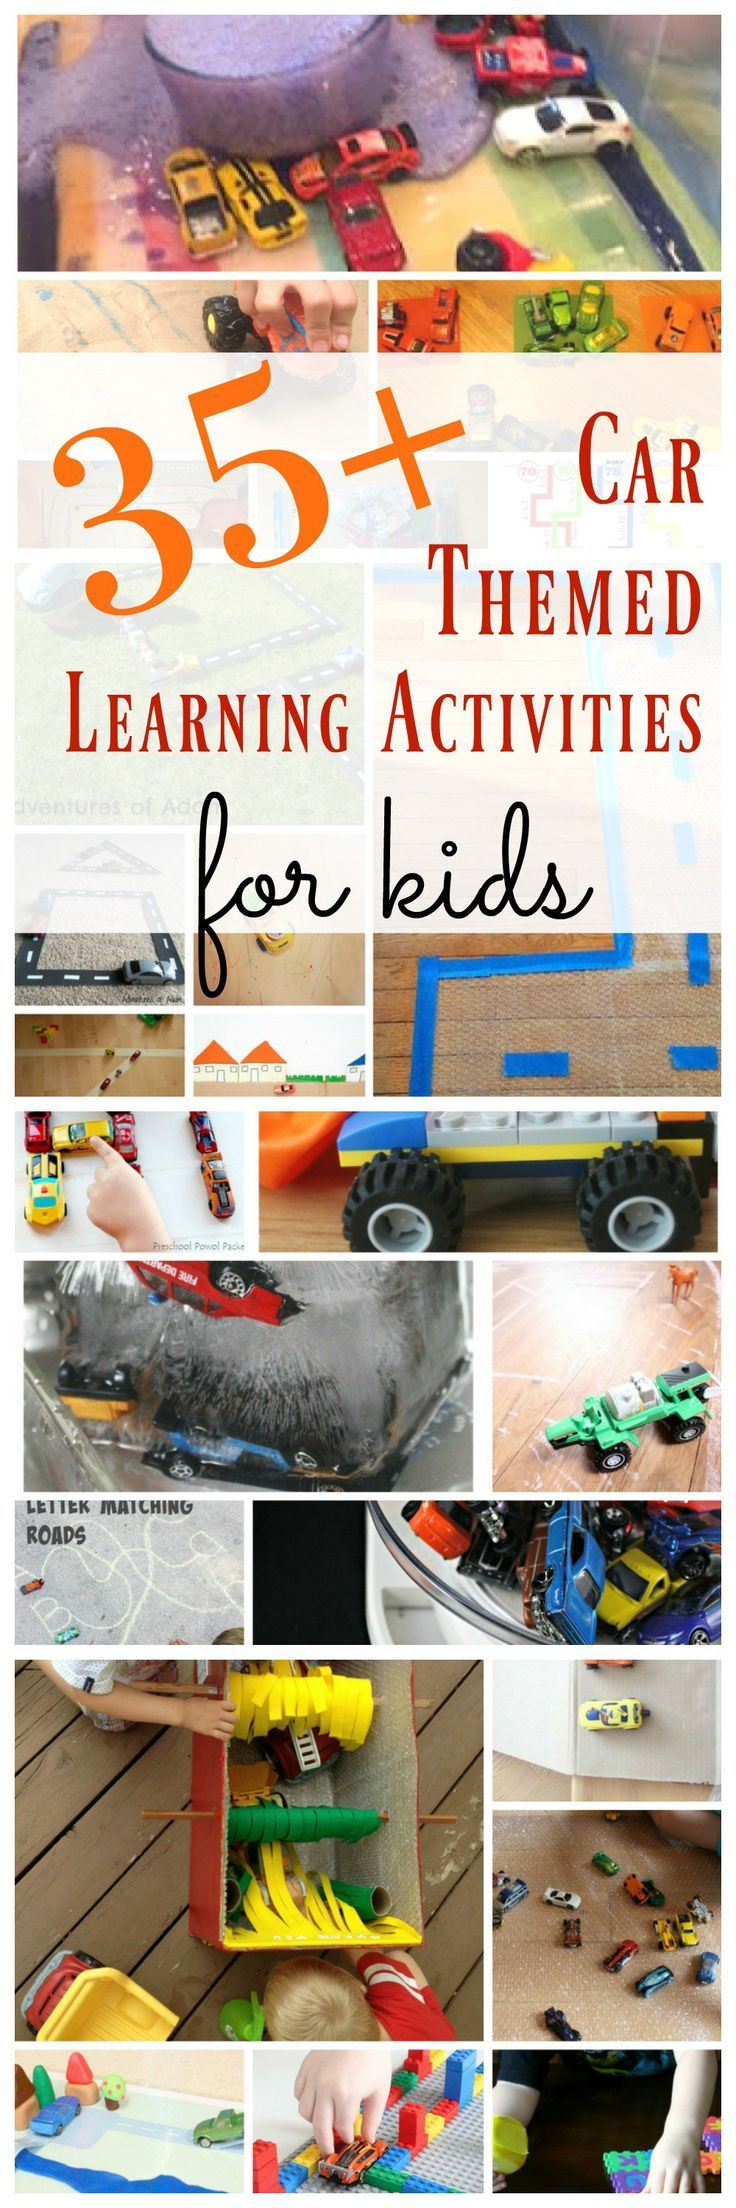 These car themed learning activities for kids will get your little ones loving learning through play! Check out more activity posts from #powerofplay52